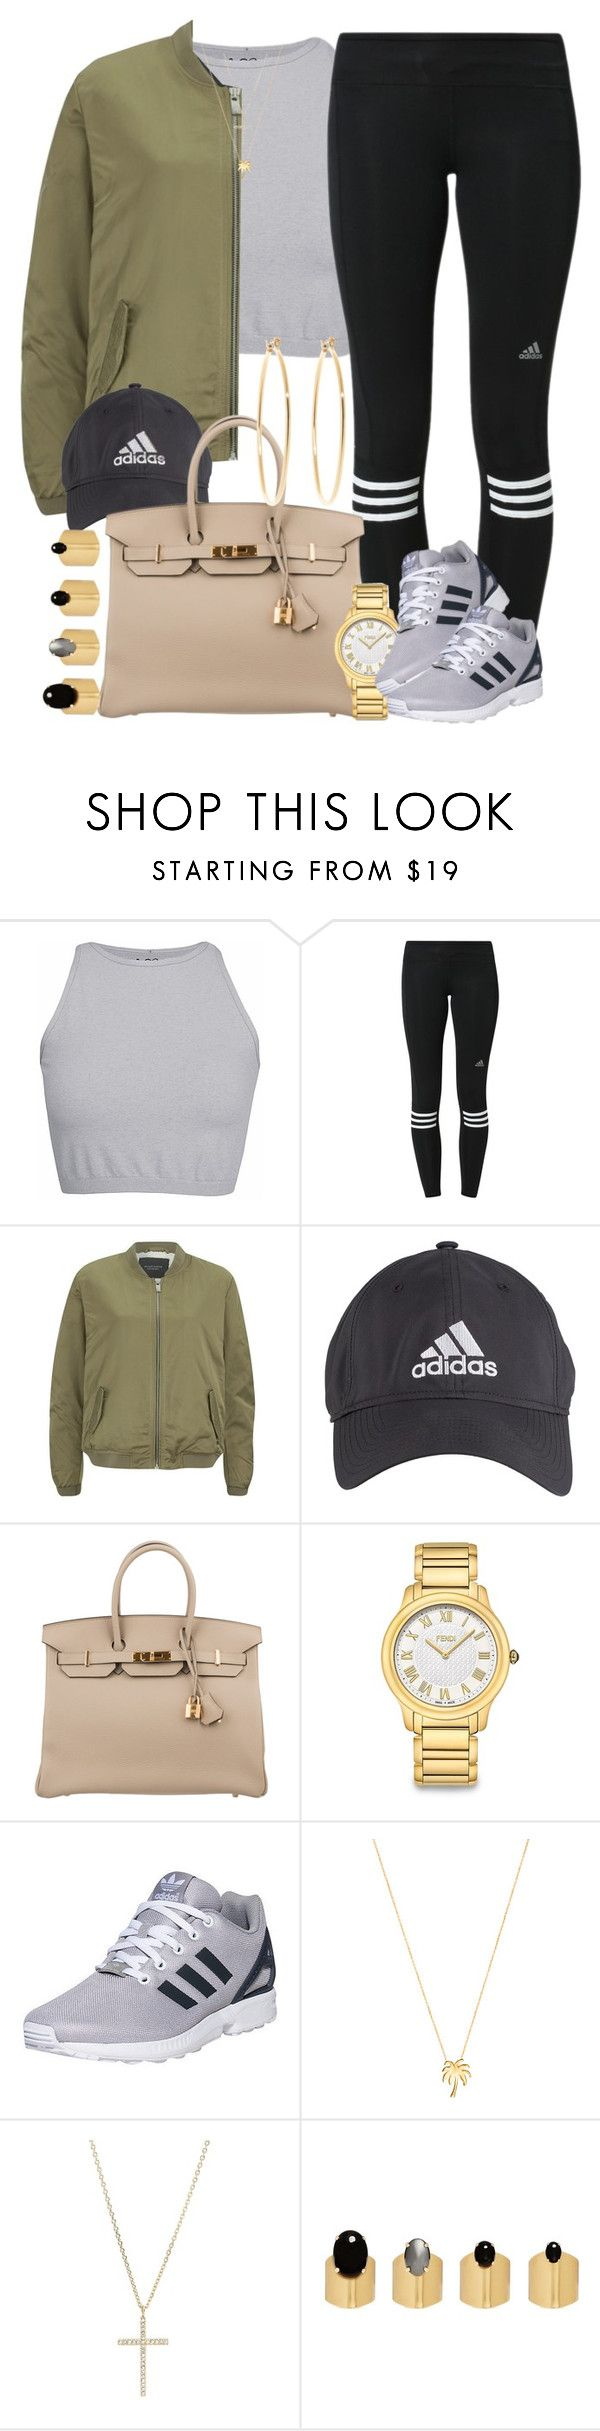 """Adidas from her head to her toes "" by livelifefreelyy ❤ liked on Polyvore featuring Free People, adidas, Maison Scotch, Hermès, Fendi, Joolz by Martha Calvo, Michael Kors, Ela Stone and Brooks Brothers"